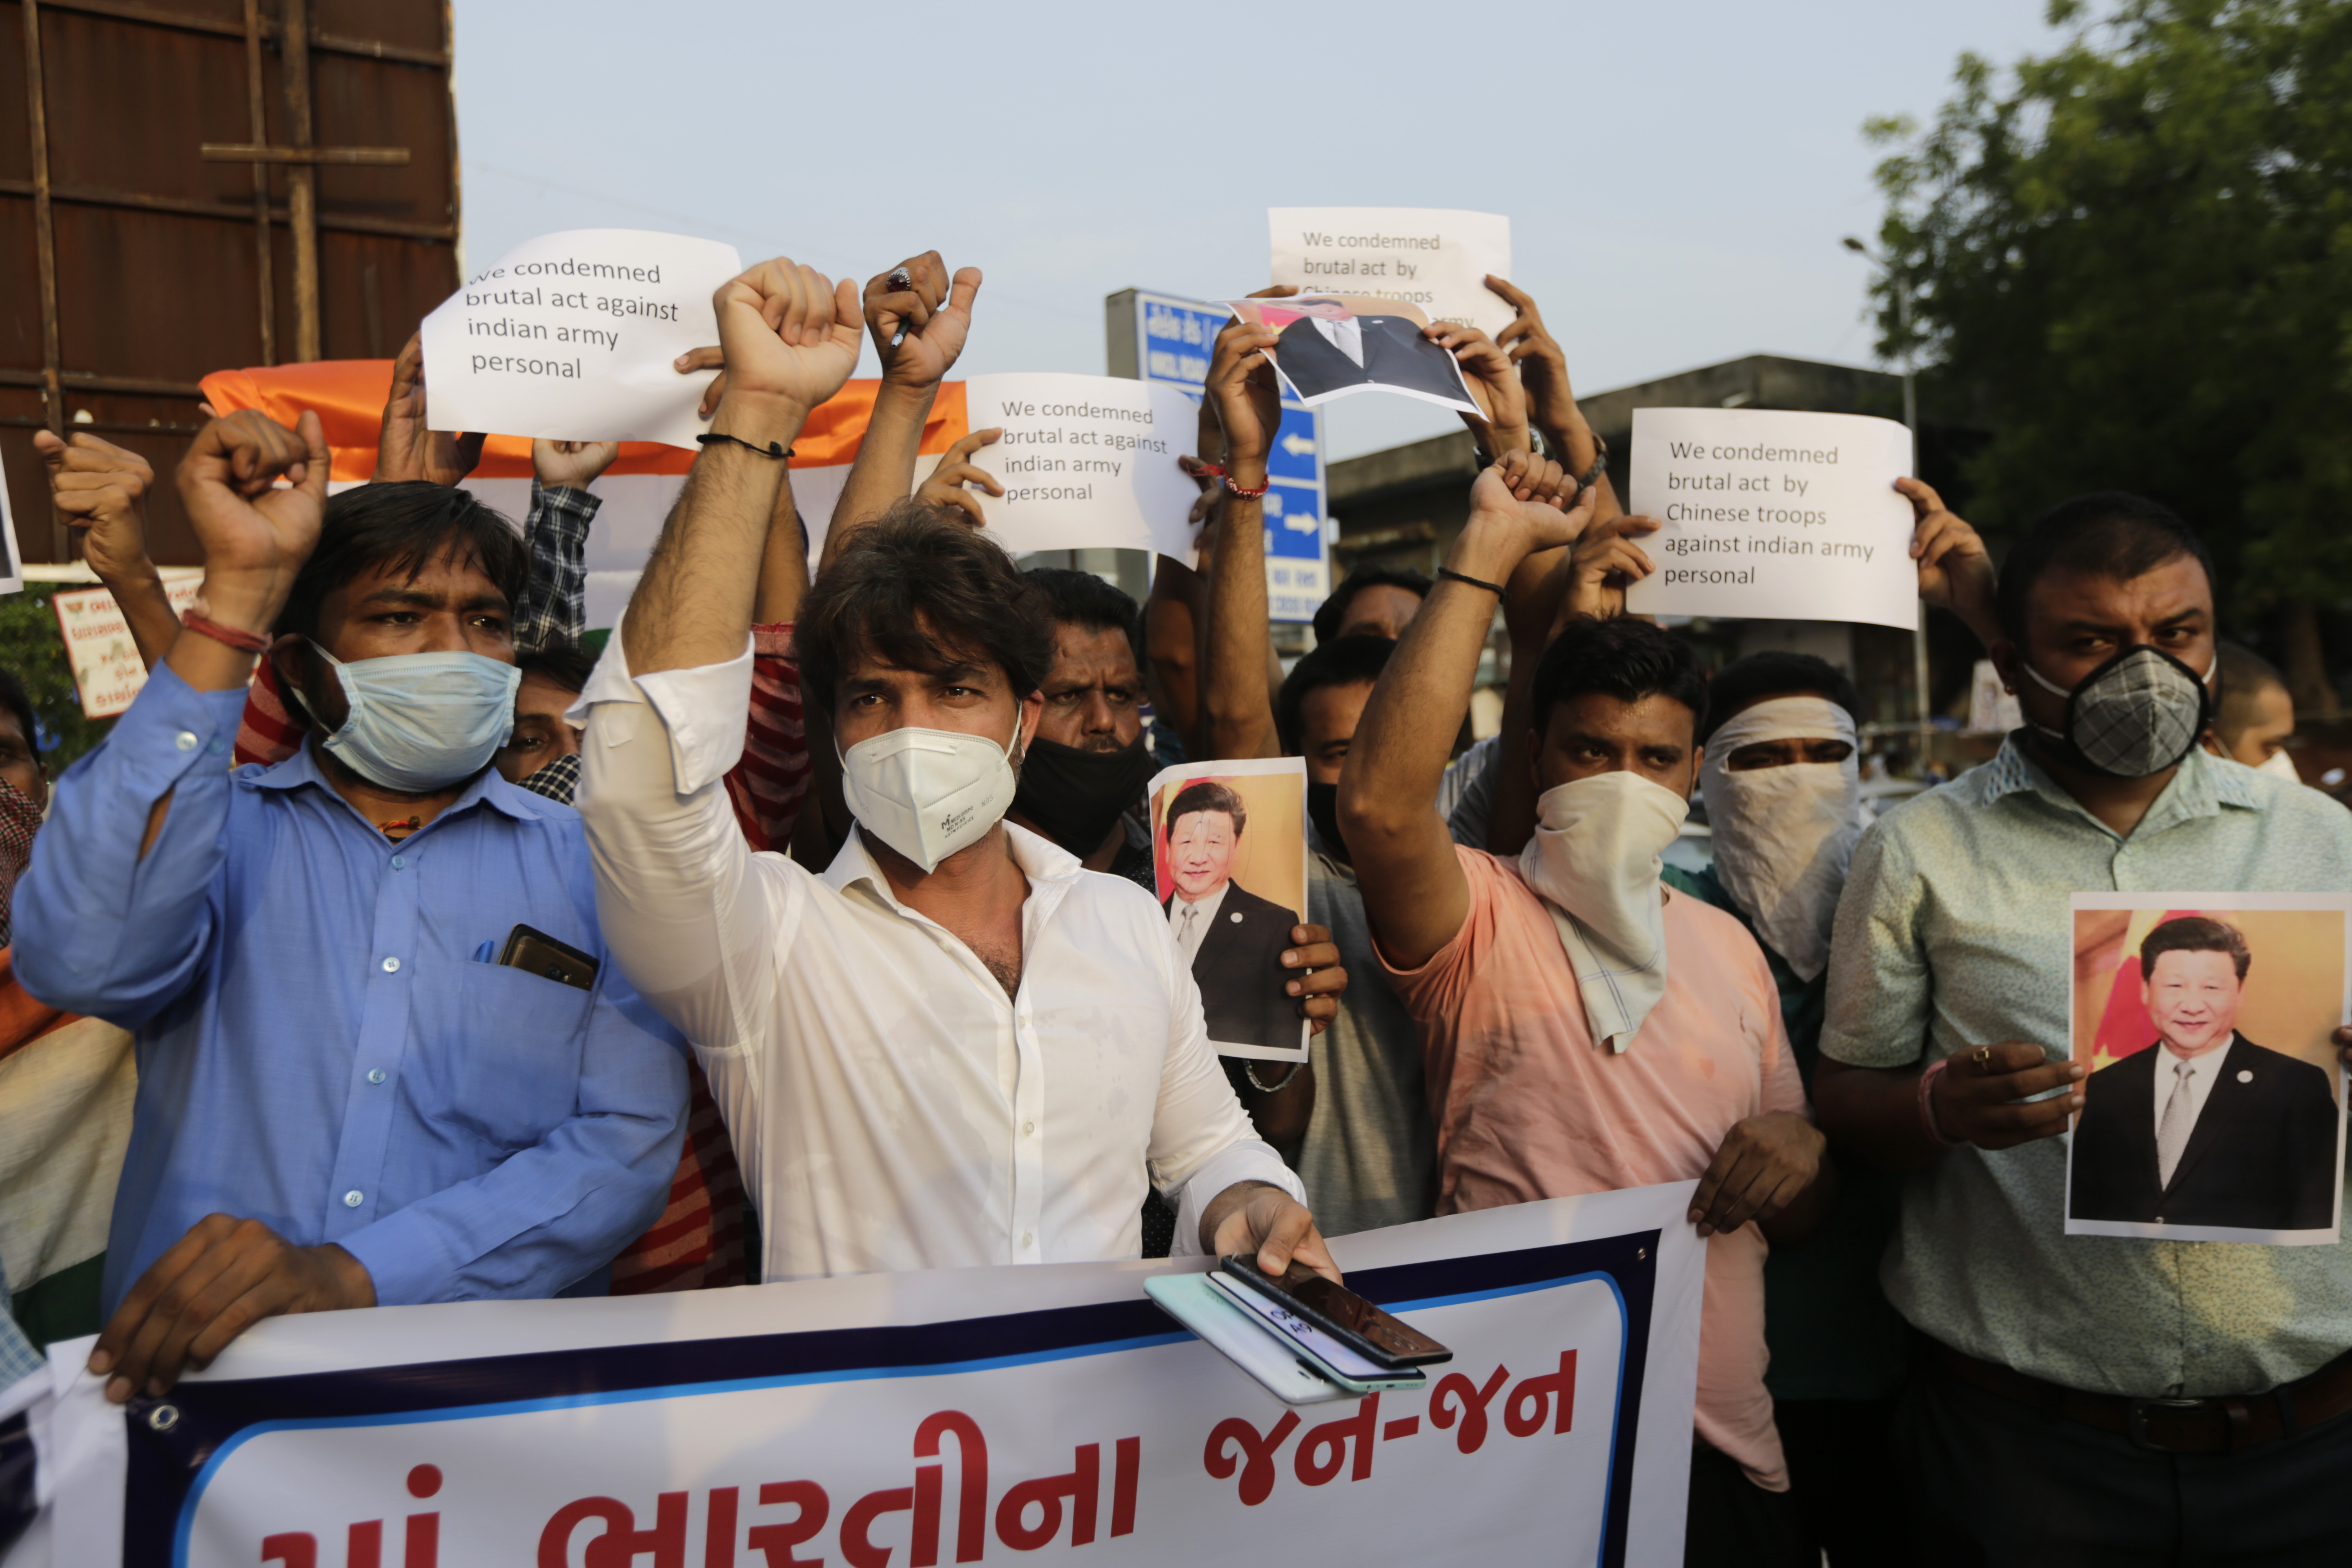 Indians shout slogans against China during a protest in Ahmedabad, India, June 16, 2020.